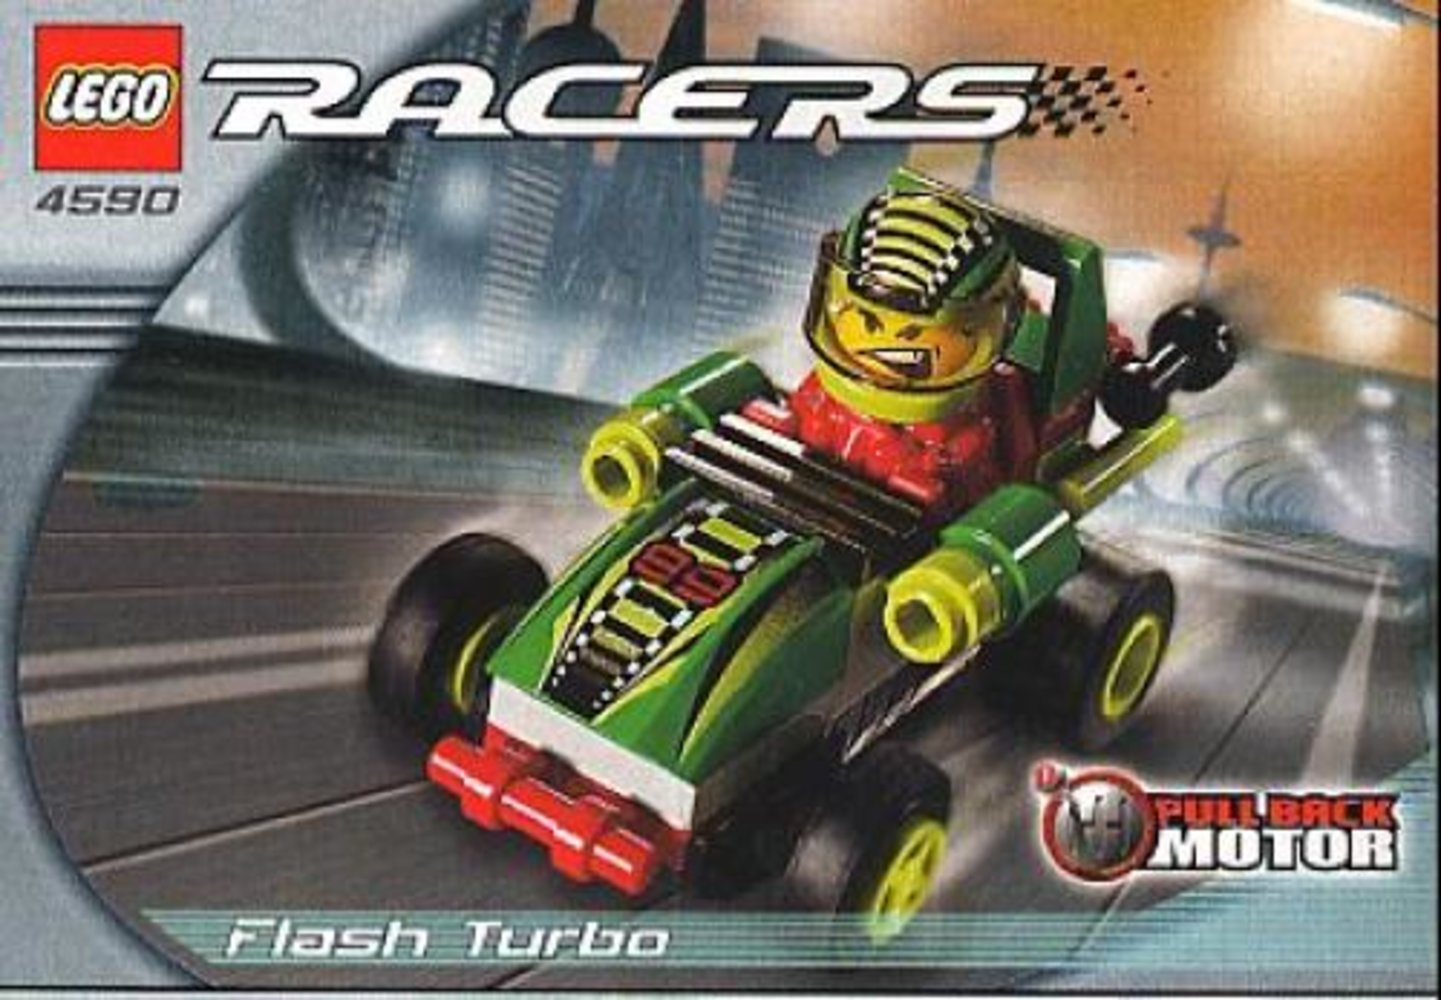 Flash Turbo